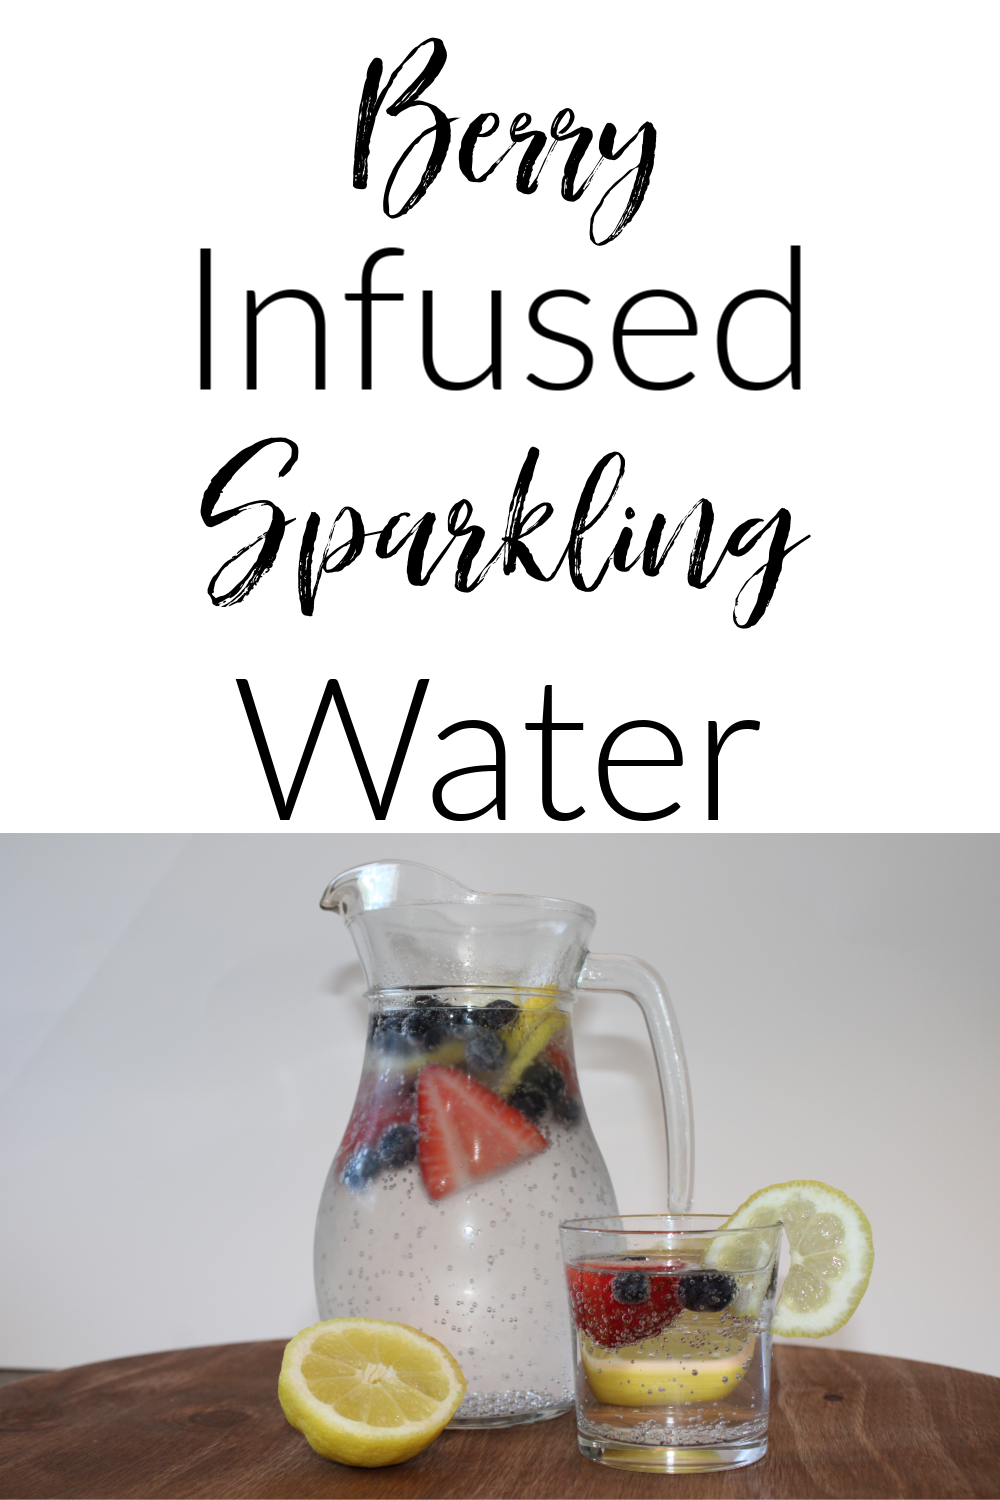 Hey guys, I'm back with another great drink recipe! This Berry Infused Sparkling Water is the perfect drink for hot summer days!